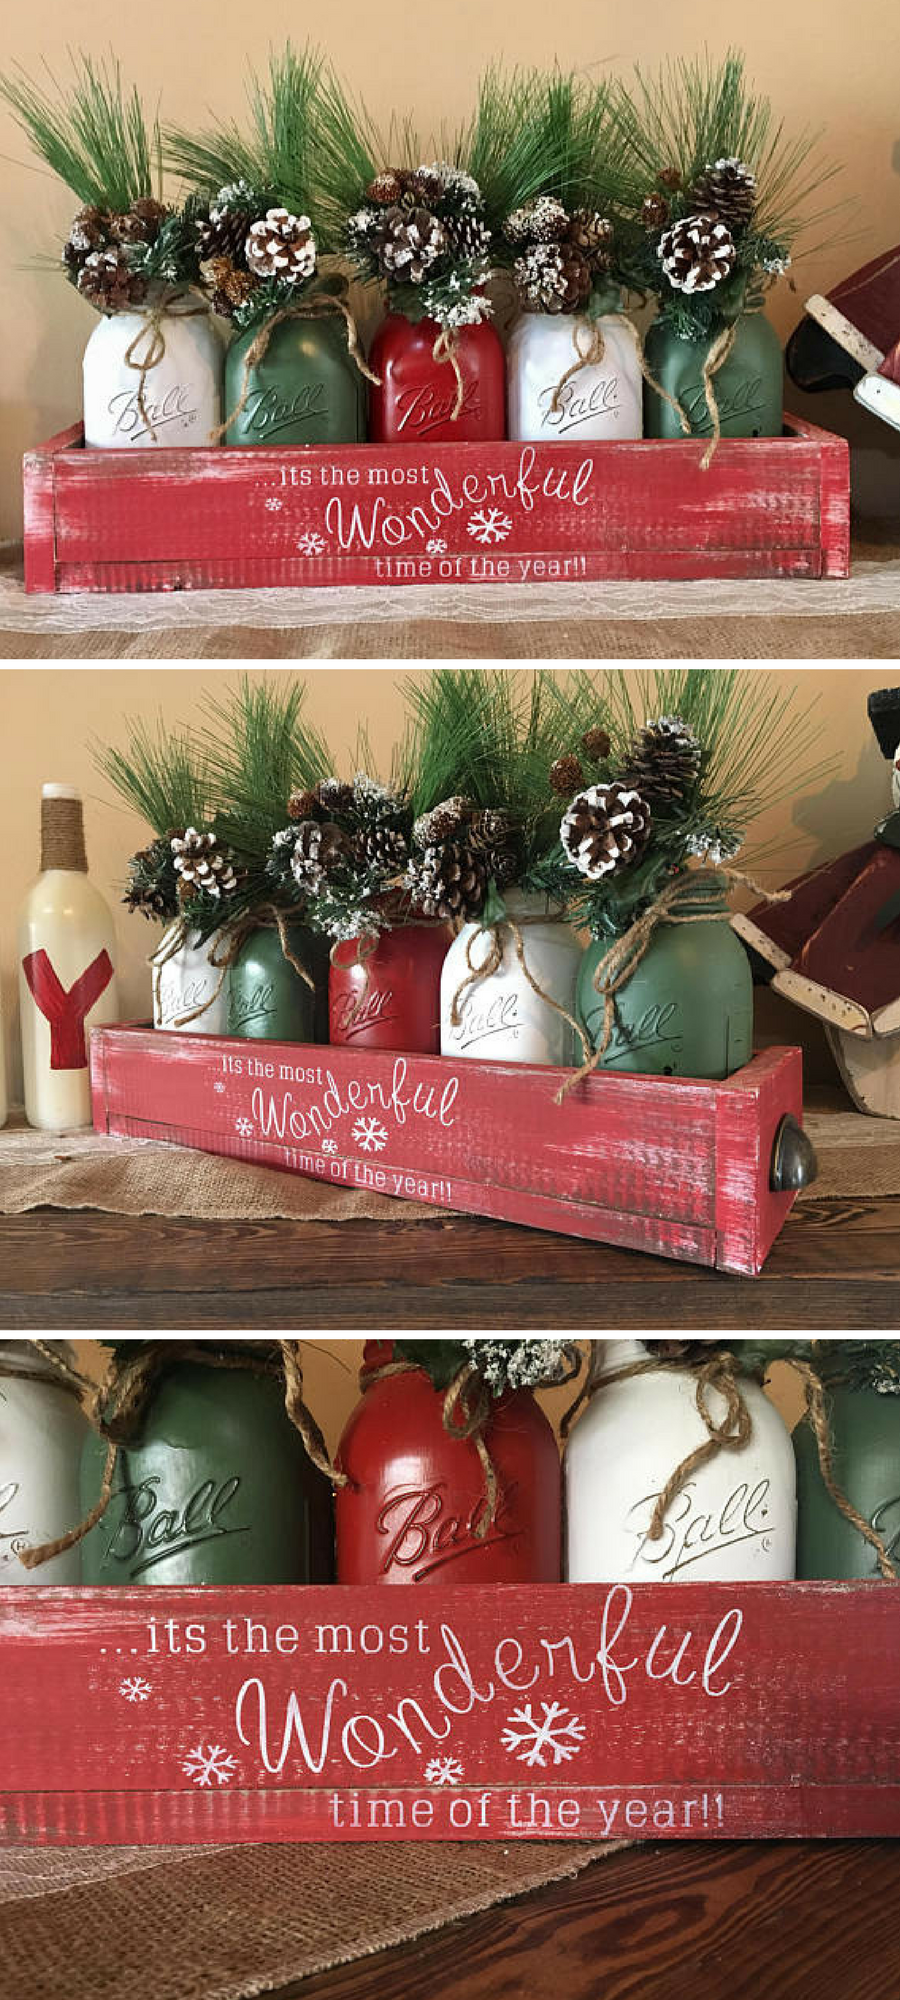 Ring In This Holiday Season With A Gorgeous Mason Jar Christmas Centerpiece This Rustic Box Is Packed Fu Christmas Jars Christmas Crafts Christmas Decorations